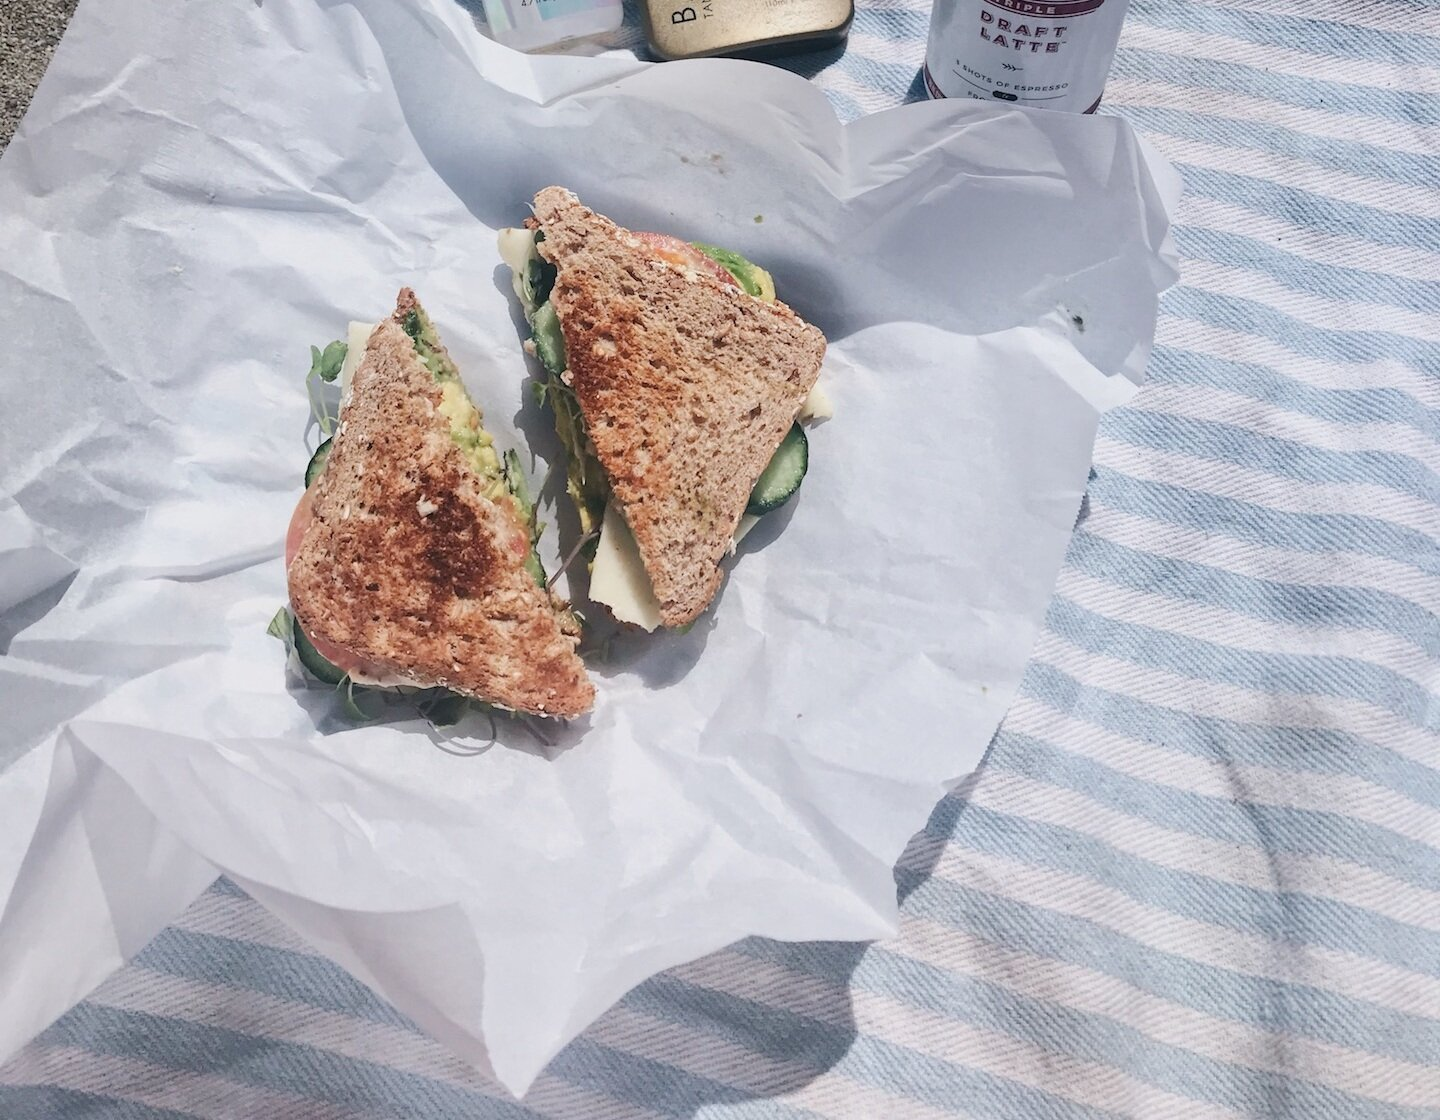 SANDWICH - You're bound to be ready for lunch at some point on your hike, especially on those long treks. Find a scenic place to sit down and enjoy this loaded veggie sandwich and the views.